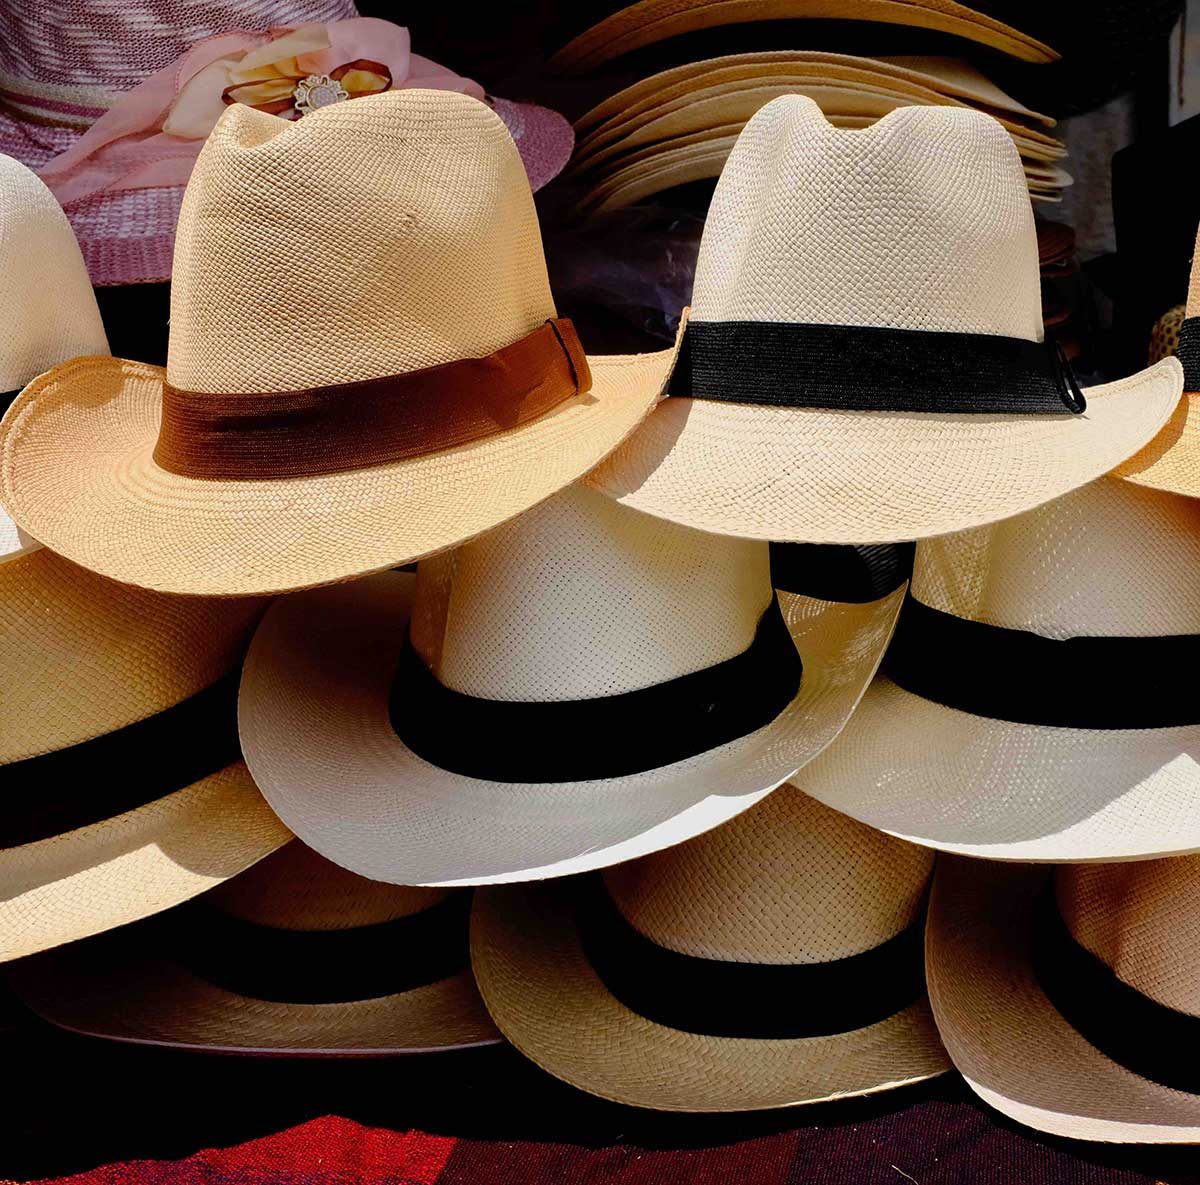 5e7cab63 Carludovica Palmata, or the Torquilla Palm, is the scientific name for the  plant used to weave the world famous Panama hats. Why are they called Panama  hats ...